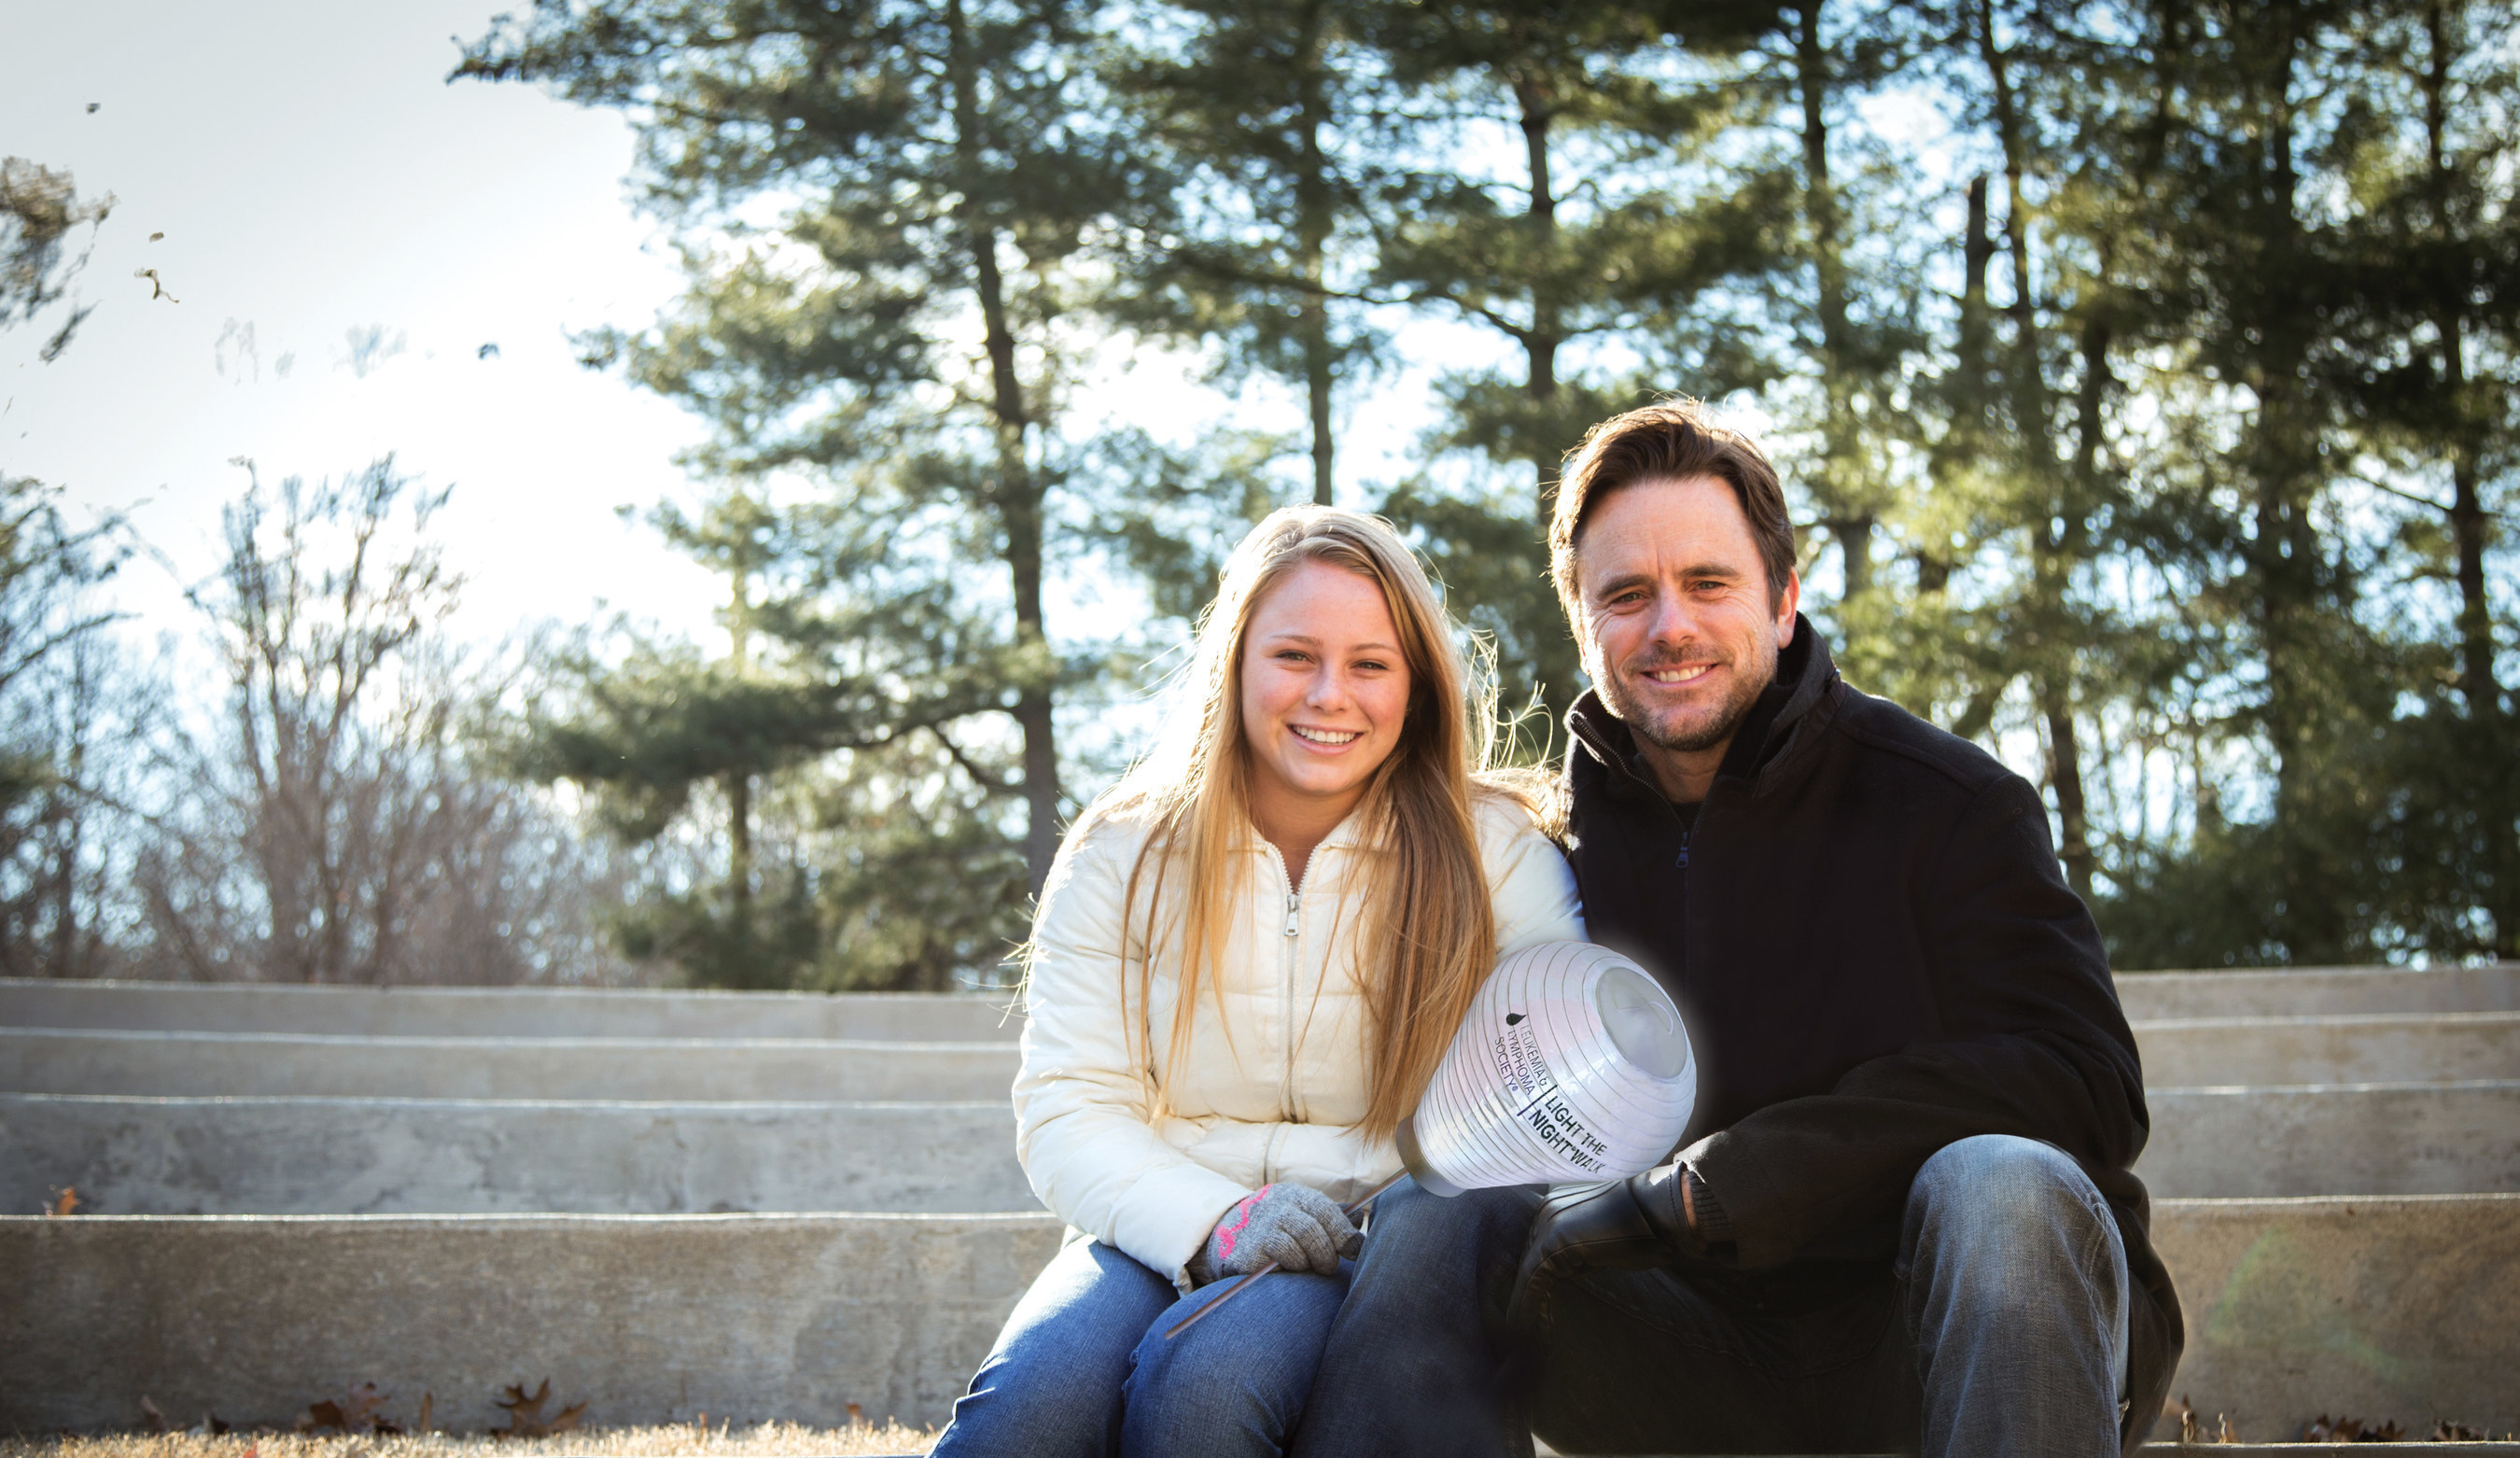 'Nashville' Star Charles Esten Brings Light to the Dark World of Cancer